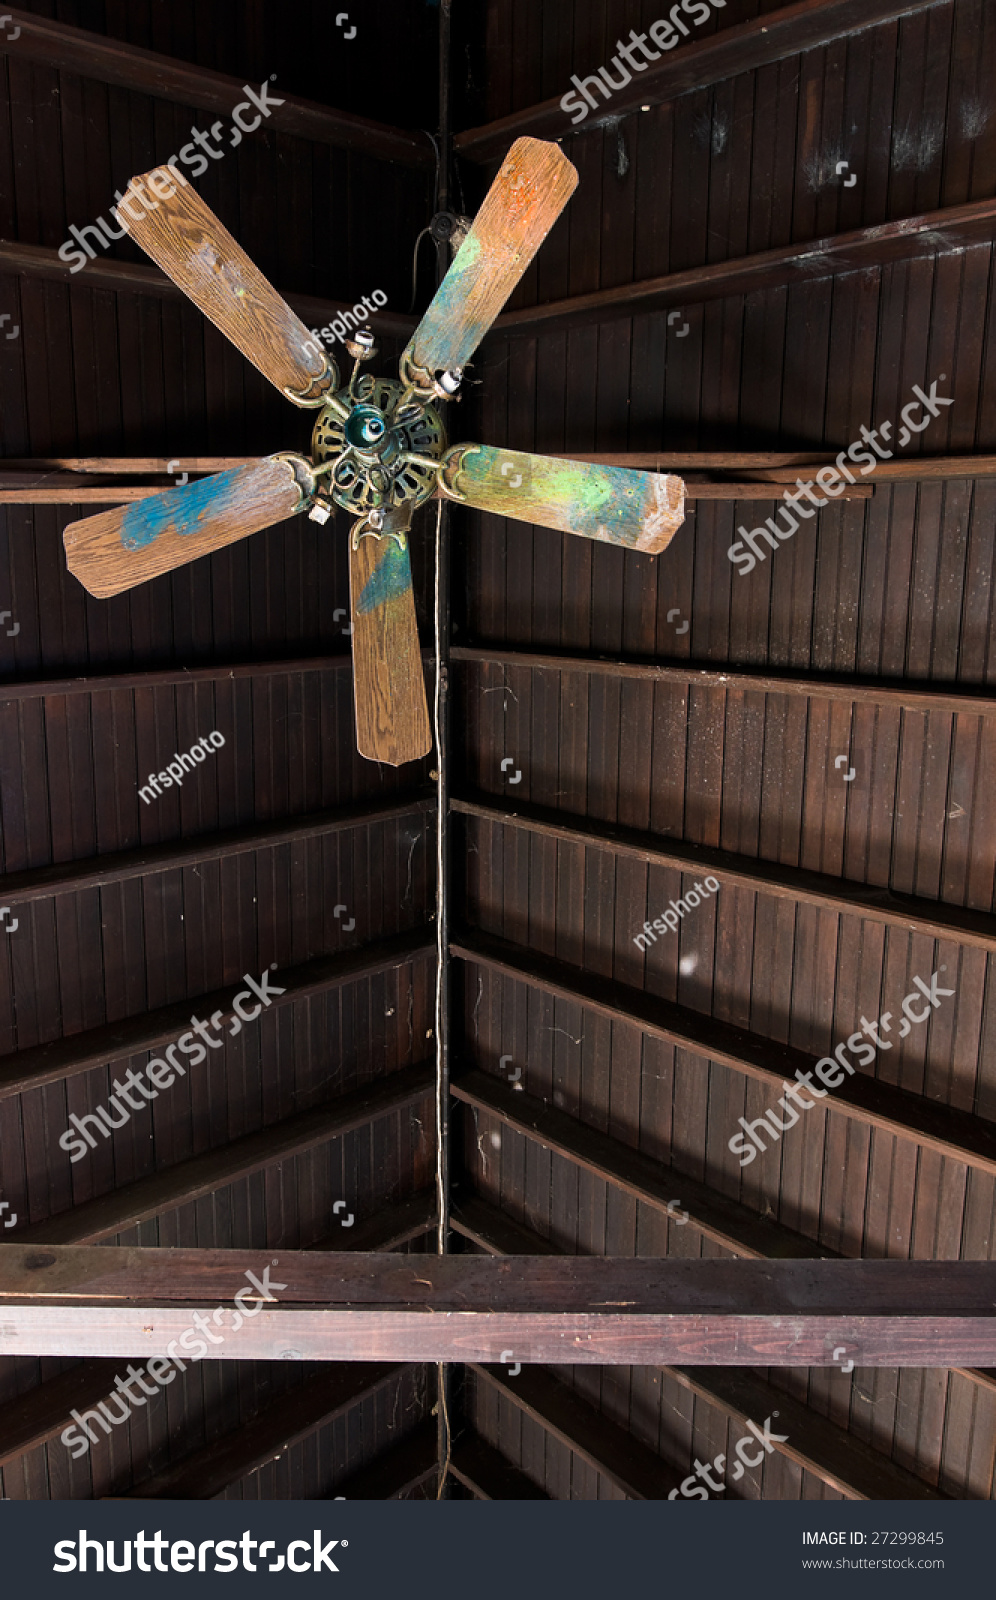 Broken Ceiling Fan In Abandoned Building Shot Straight Up Towards The Exposed Wood Roof